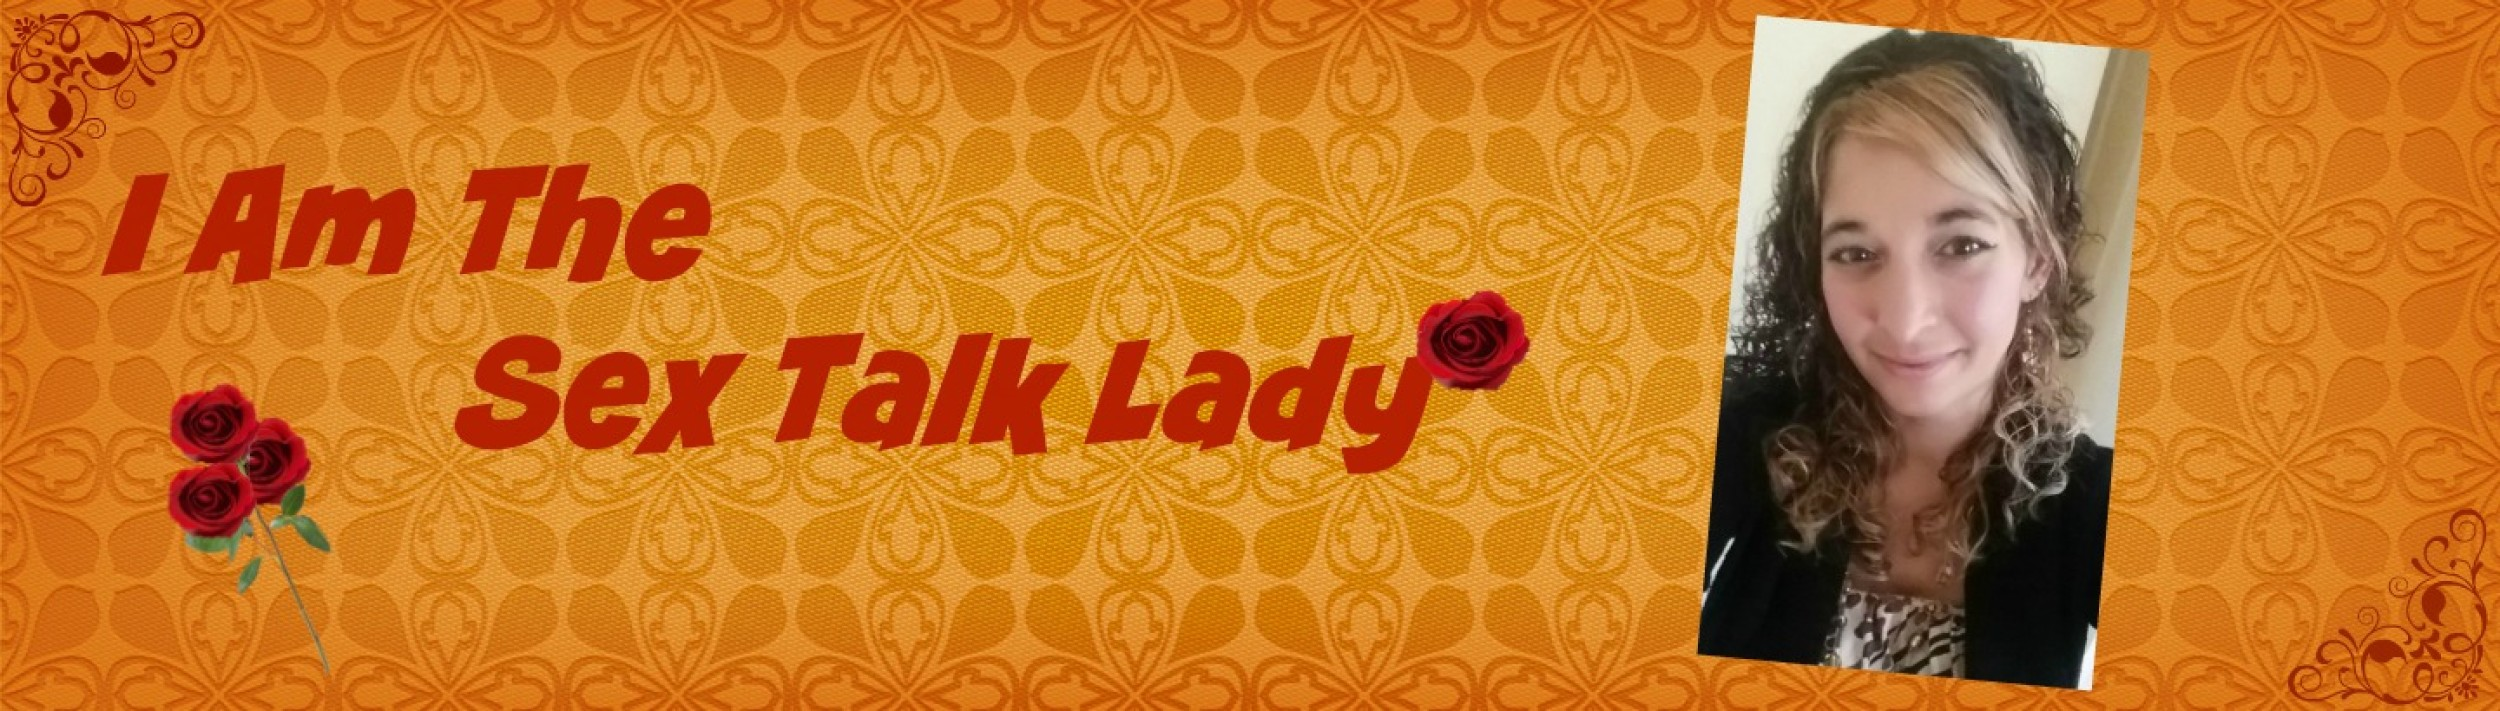 I Am The Sex Talk Lady